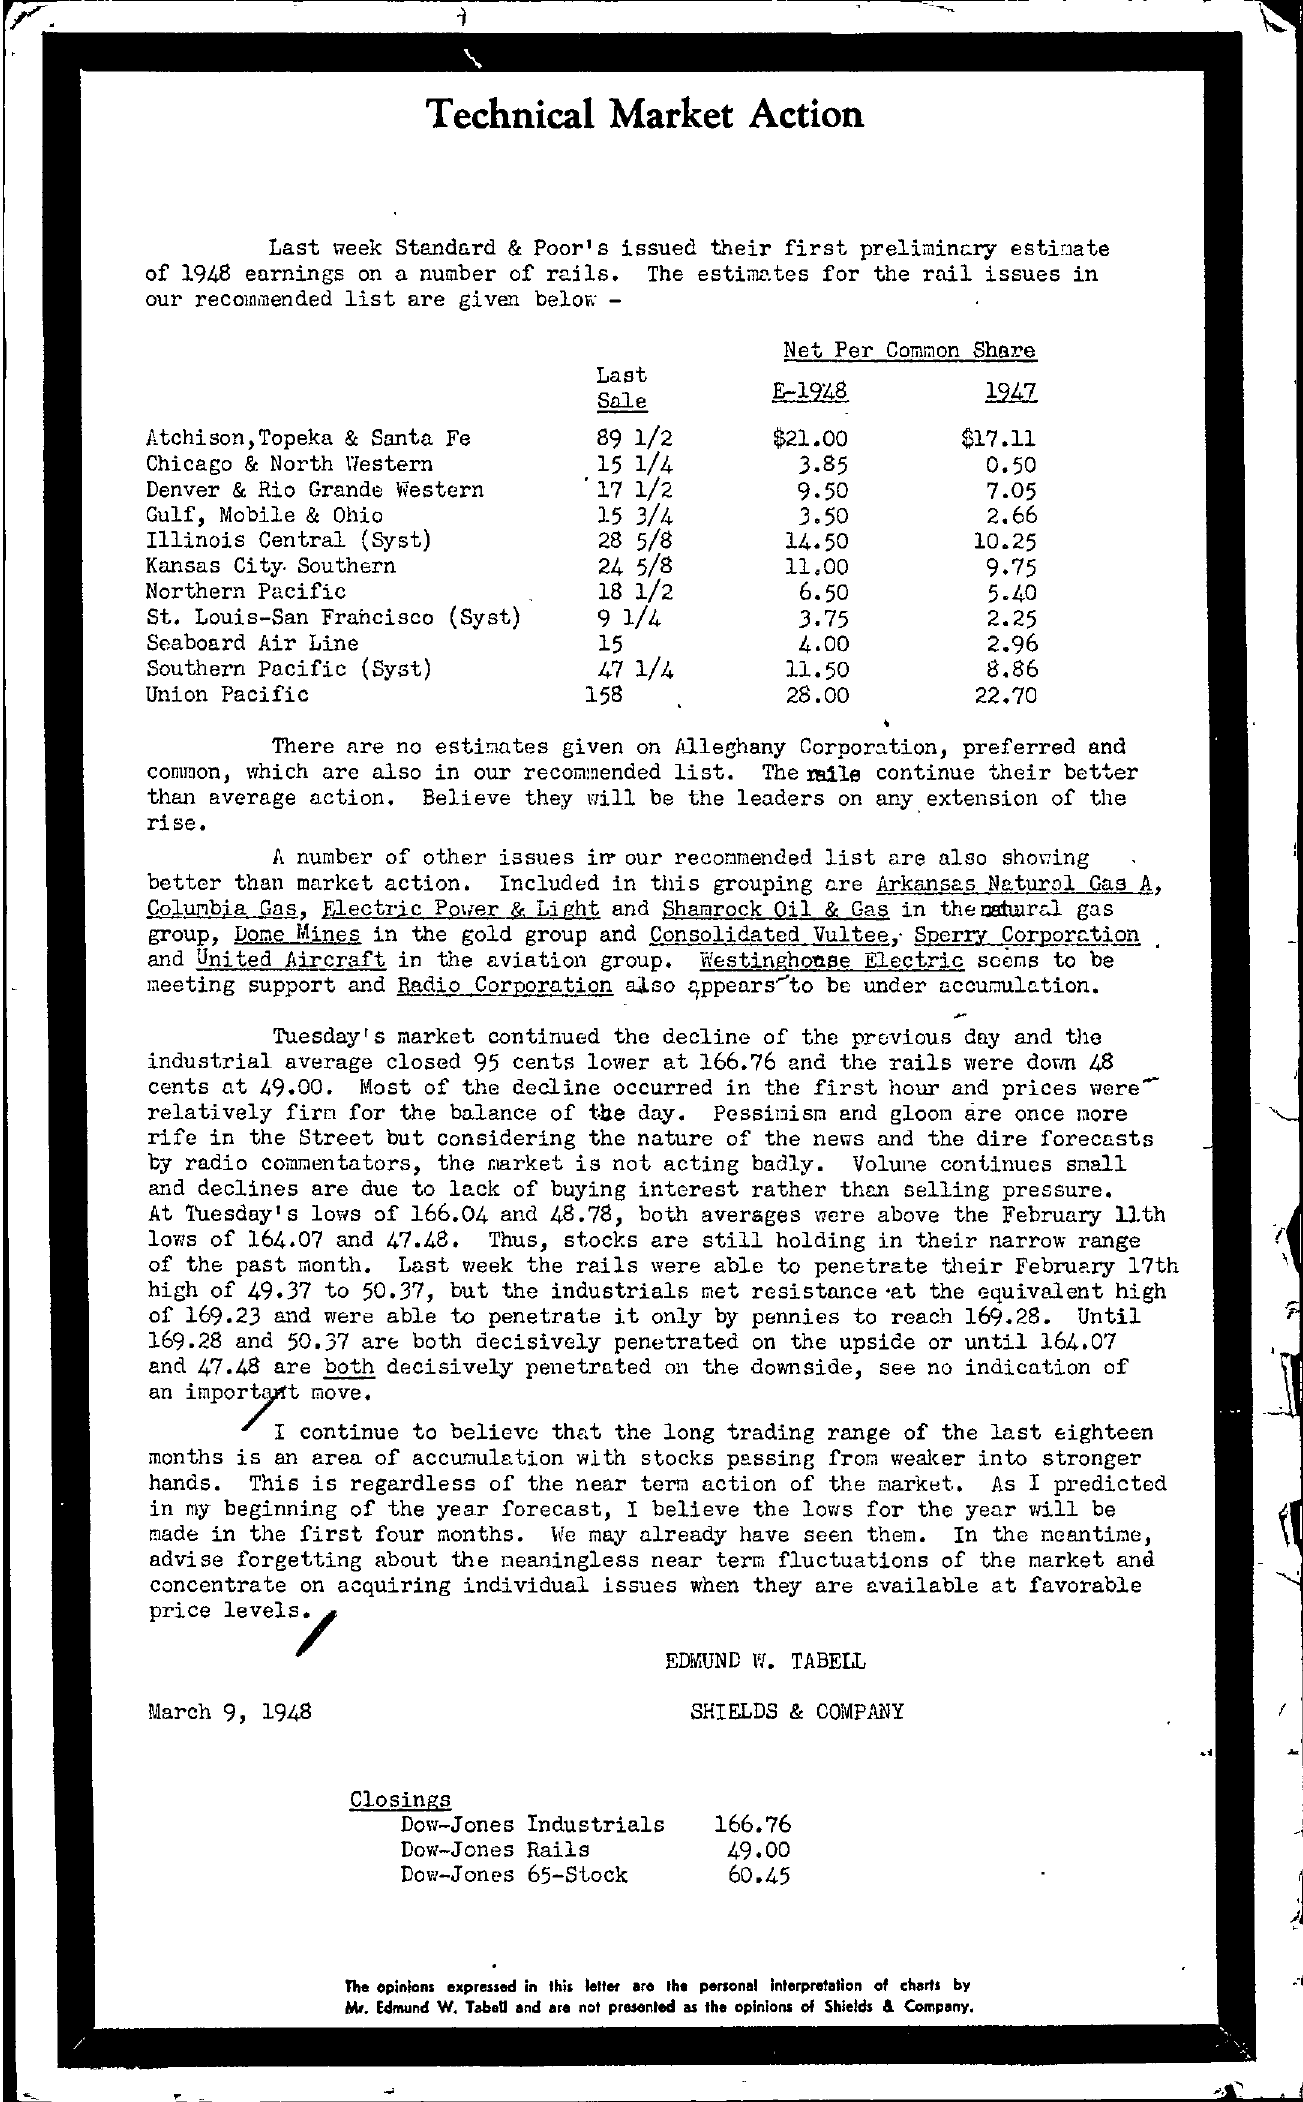 Tabell's Market Letter - March 09, 1948